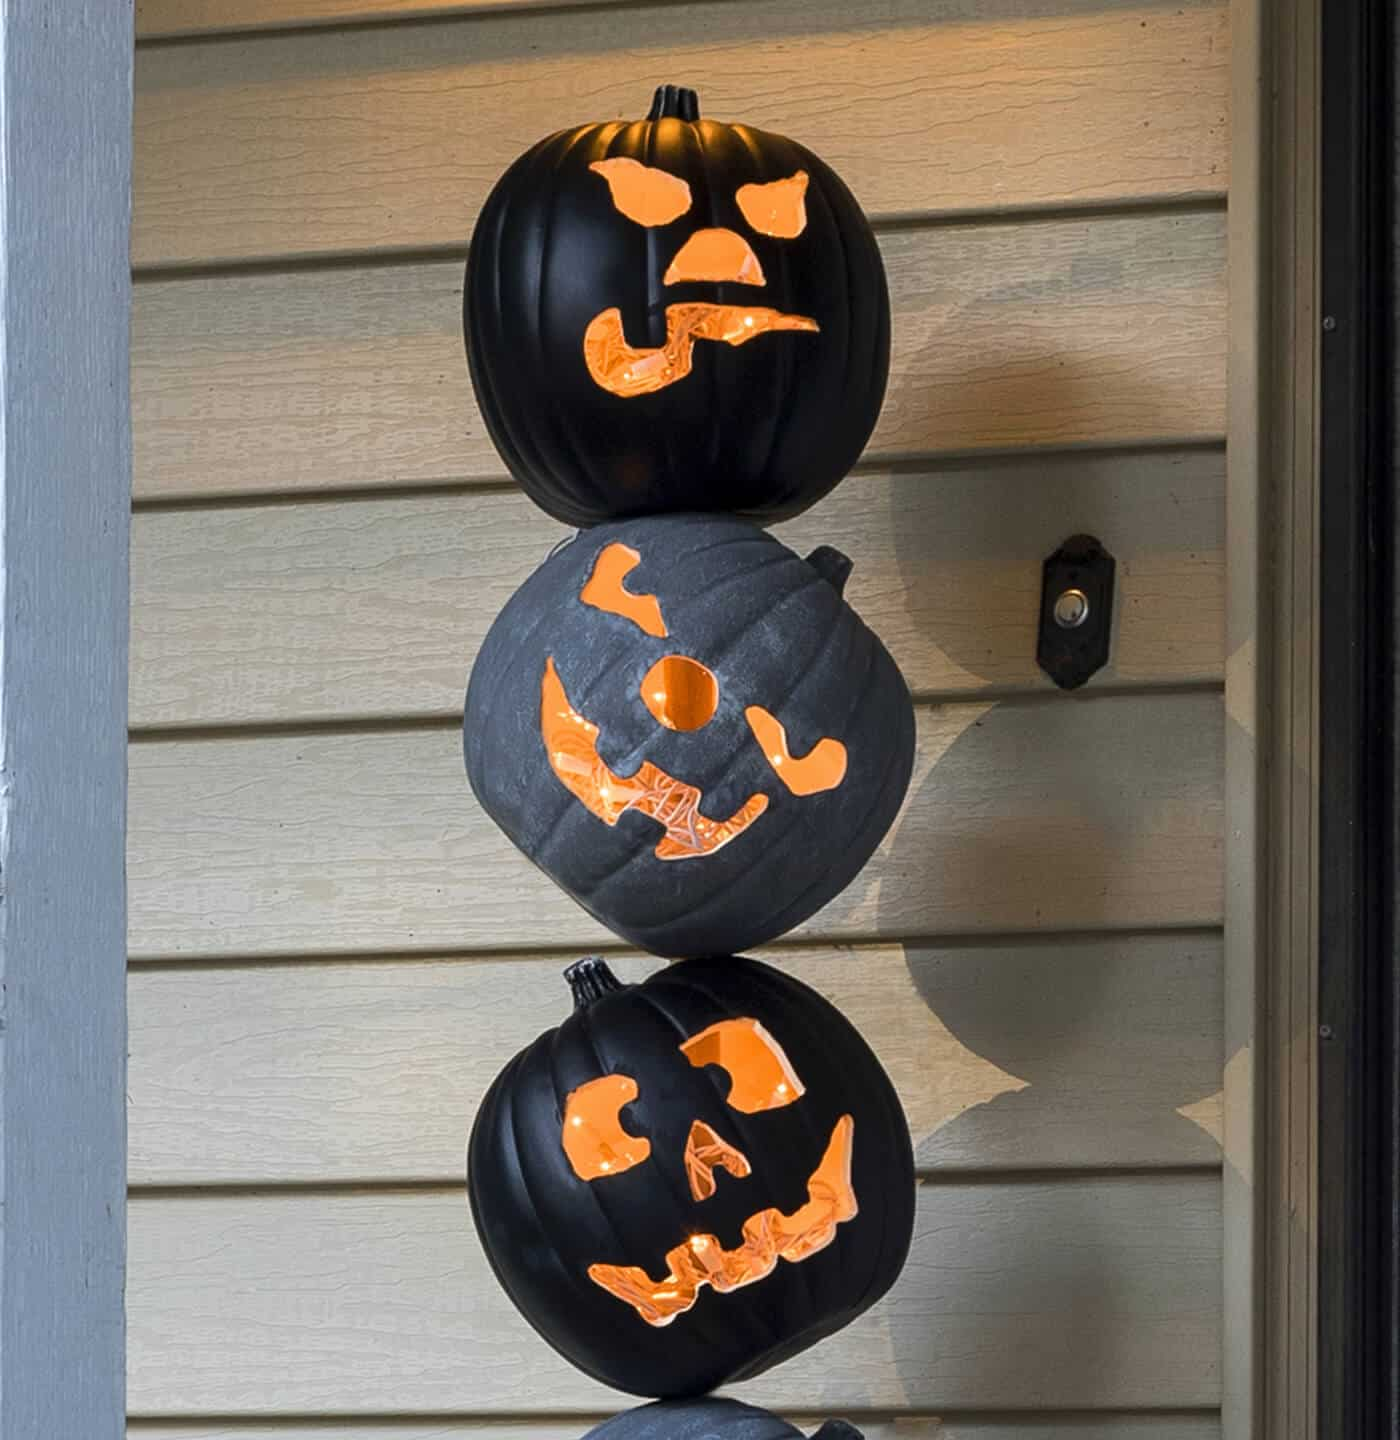 Grab some faux pumpkins from the craft store and create this unique Halloween pumpkin topiary! It will look perfect on your front porch. So festive!